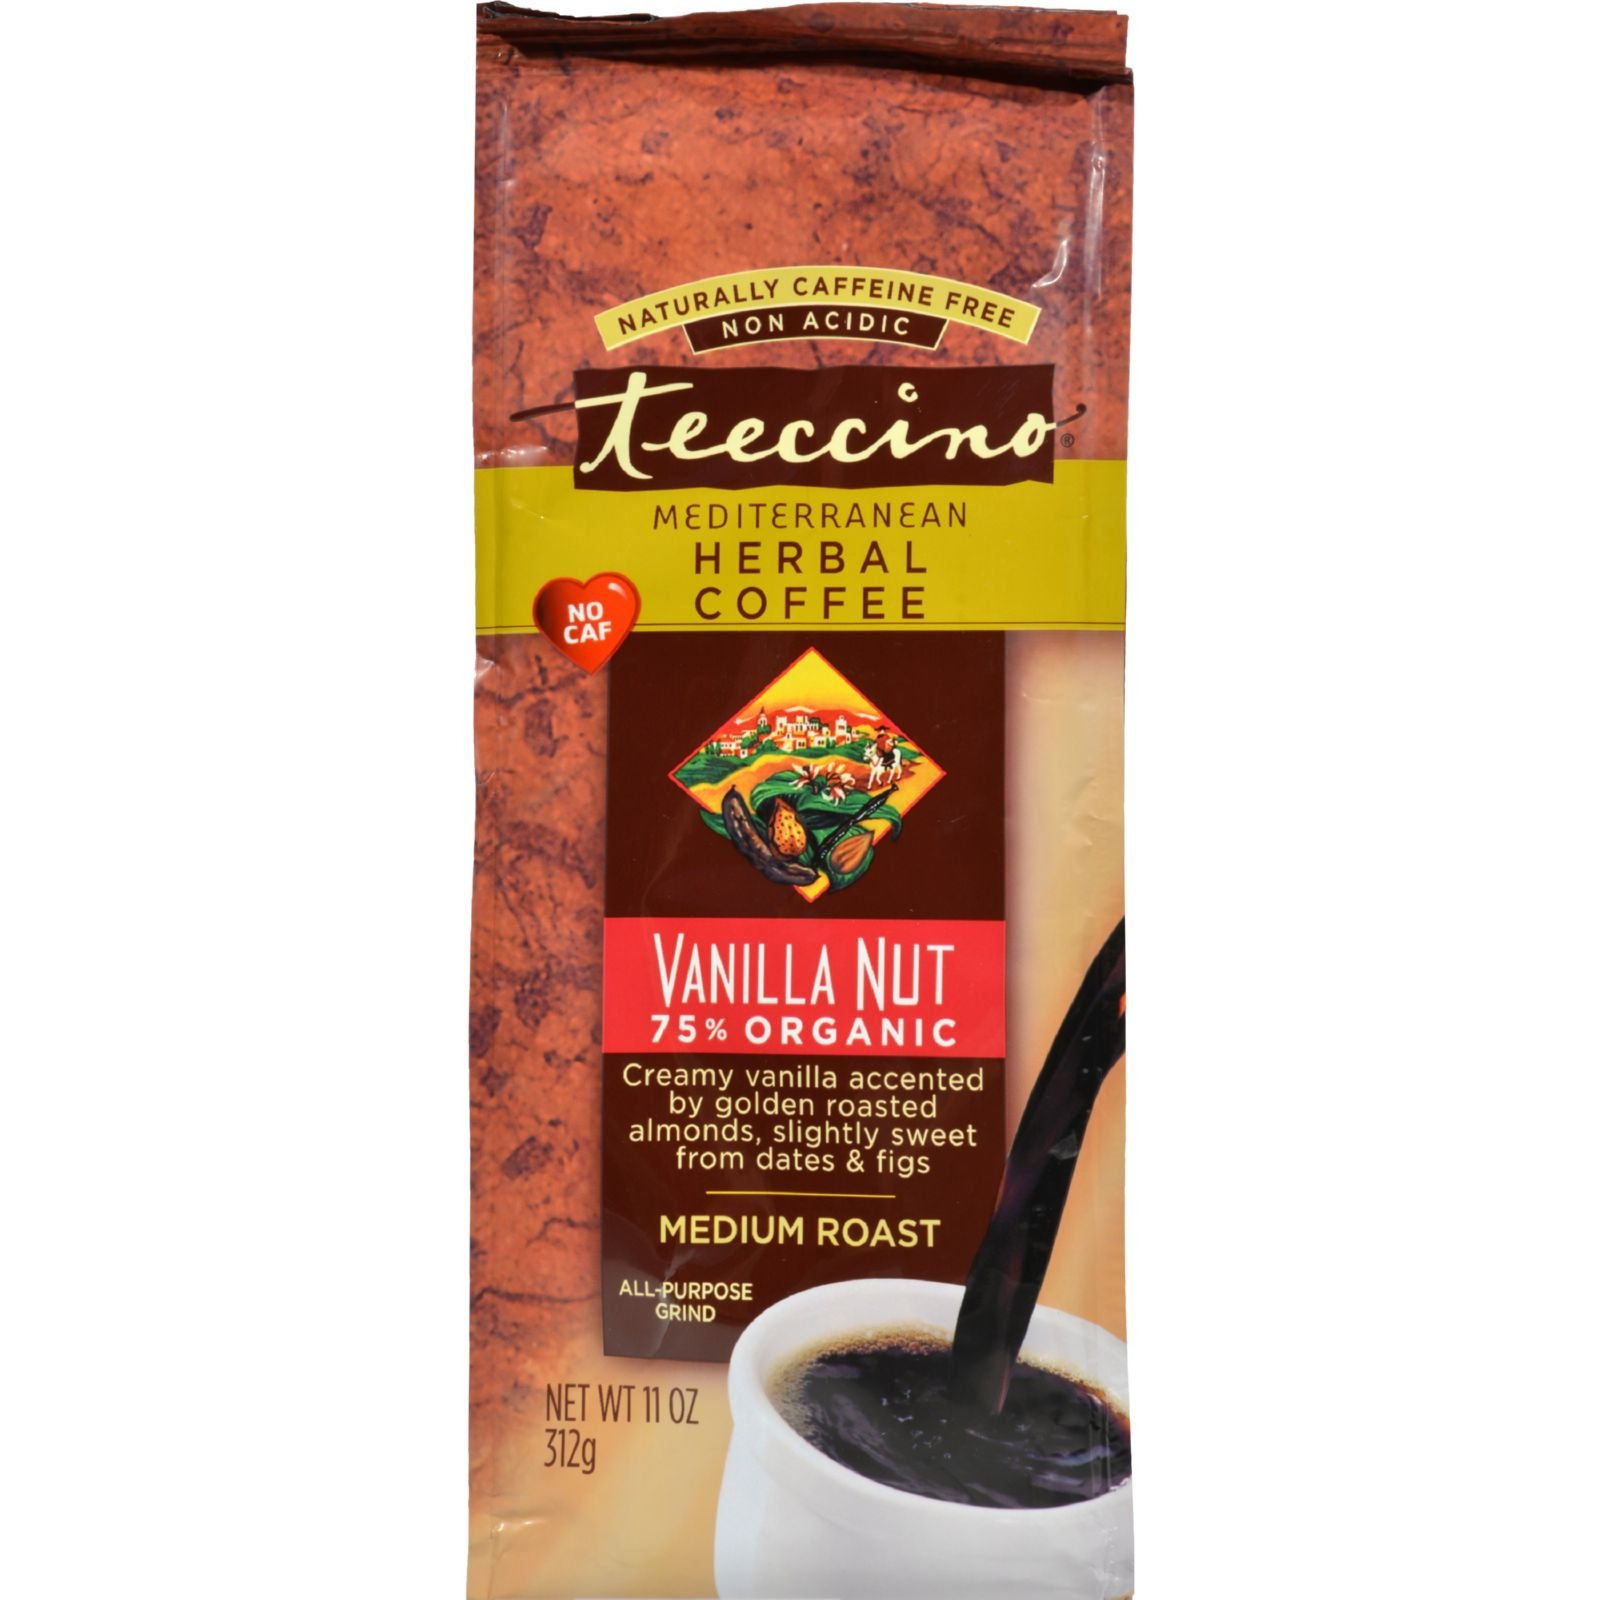 Teeccino Mediterranean Herbal Coffee Vanilla Nut - 11 oz - Case of 6 - 70%+ Organic - Gluten Free - Dairy Free - Yeast Free - Wheat Free - Vegan by Teeccino